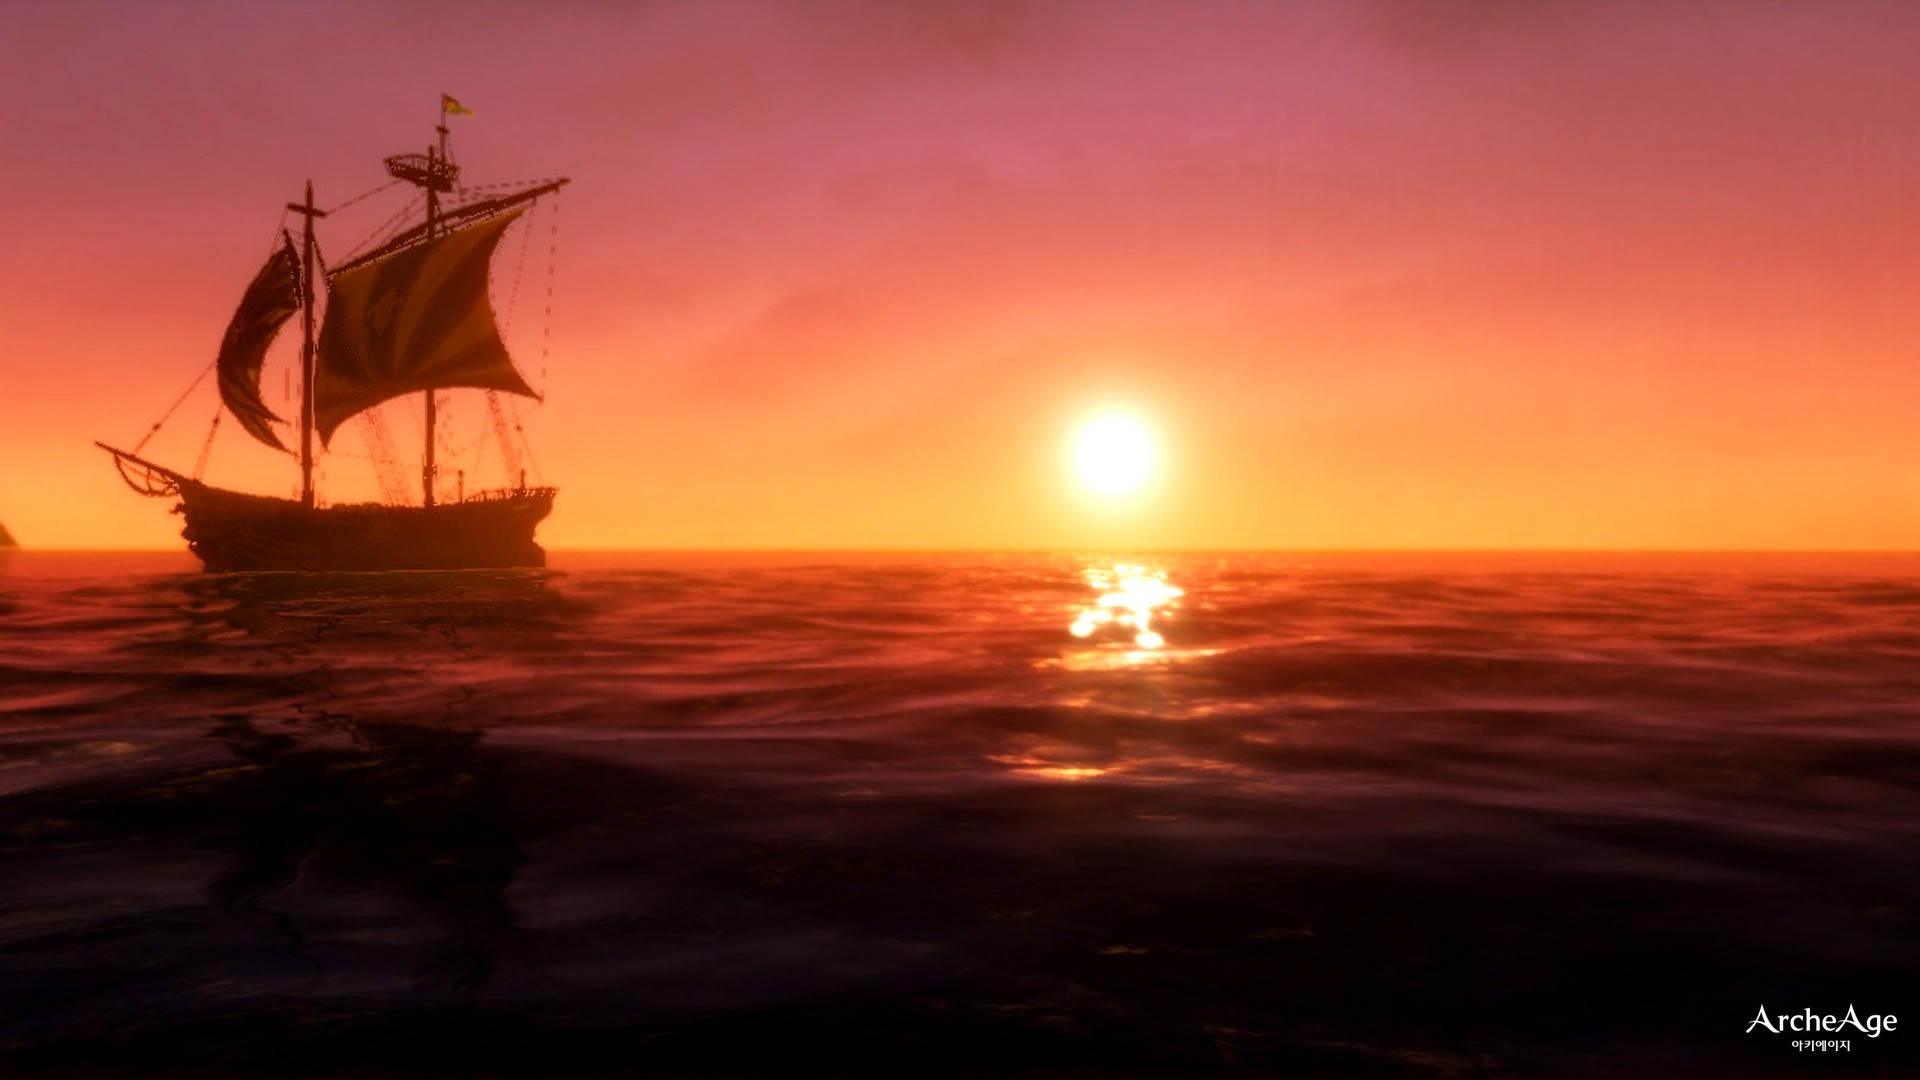 ArcheAge Wallpapers | theVideoGameGallery.com